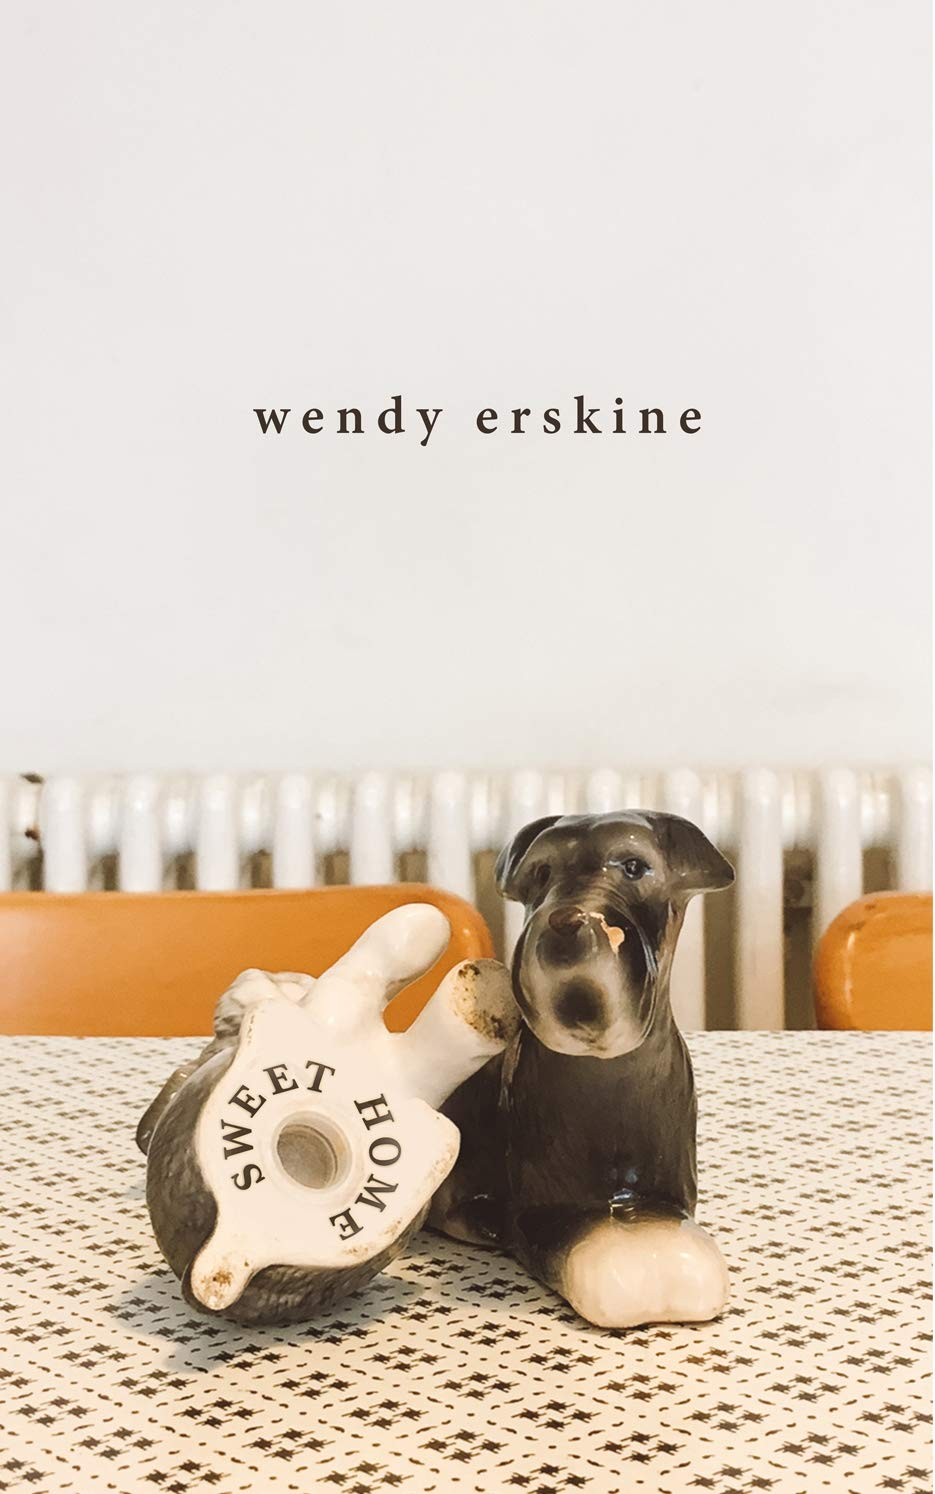 Featured Book 1 - Sweet Home by Wendy Erskine (Picador, 2019)